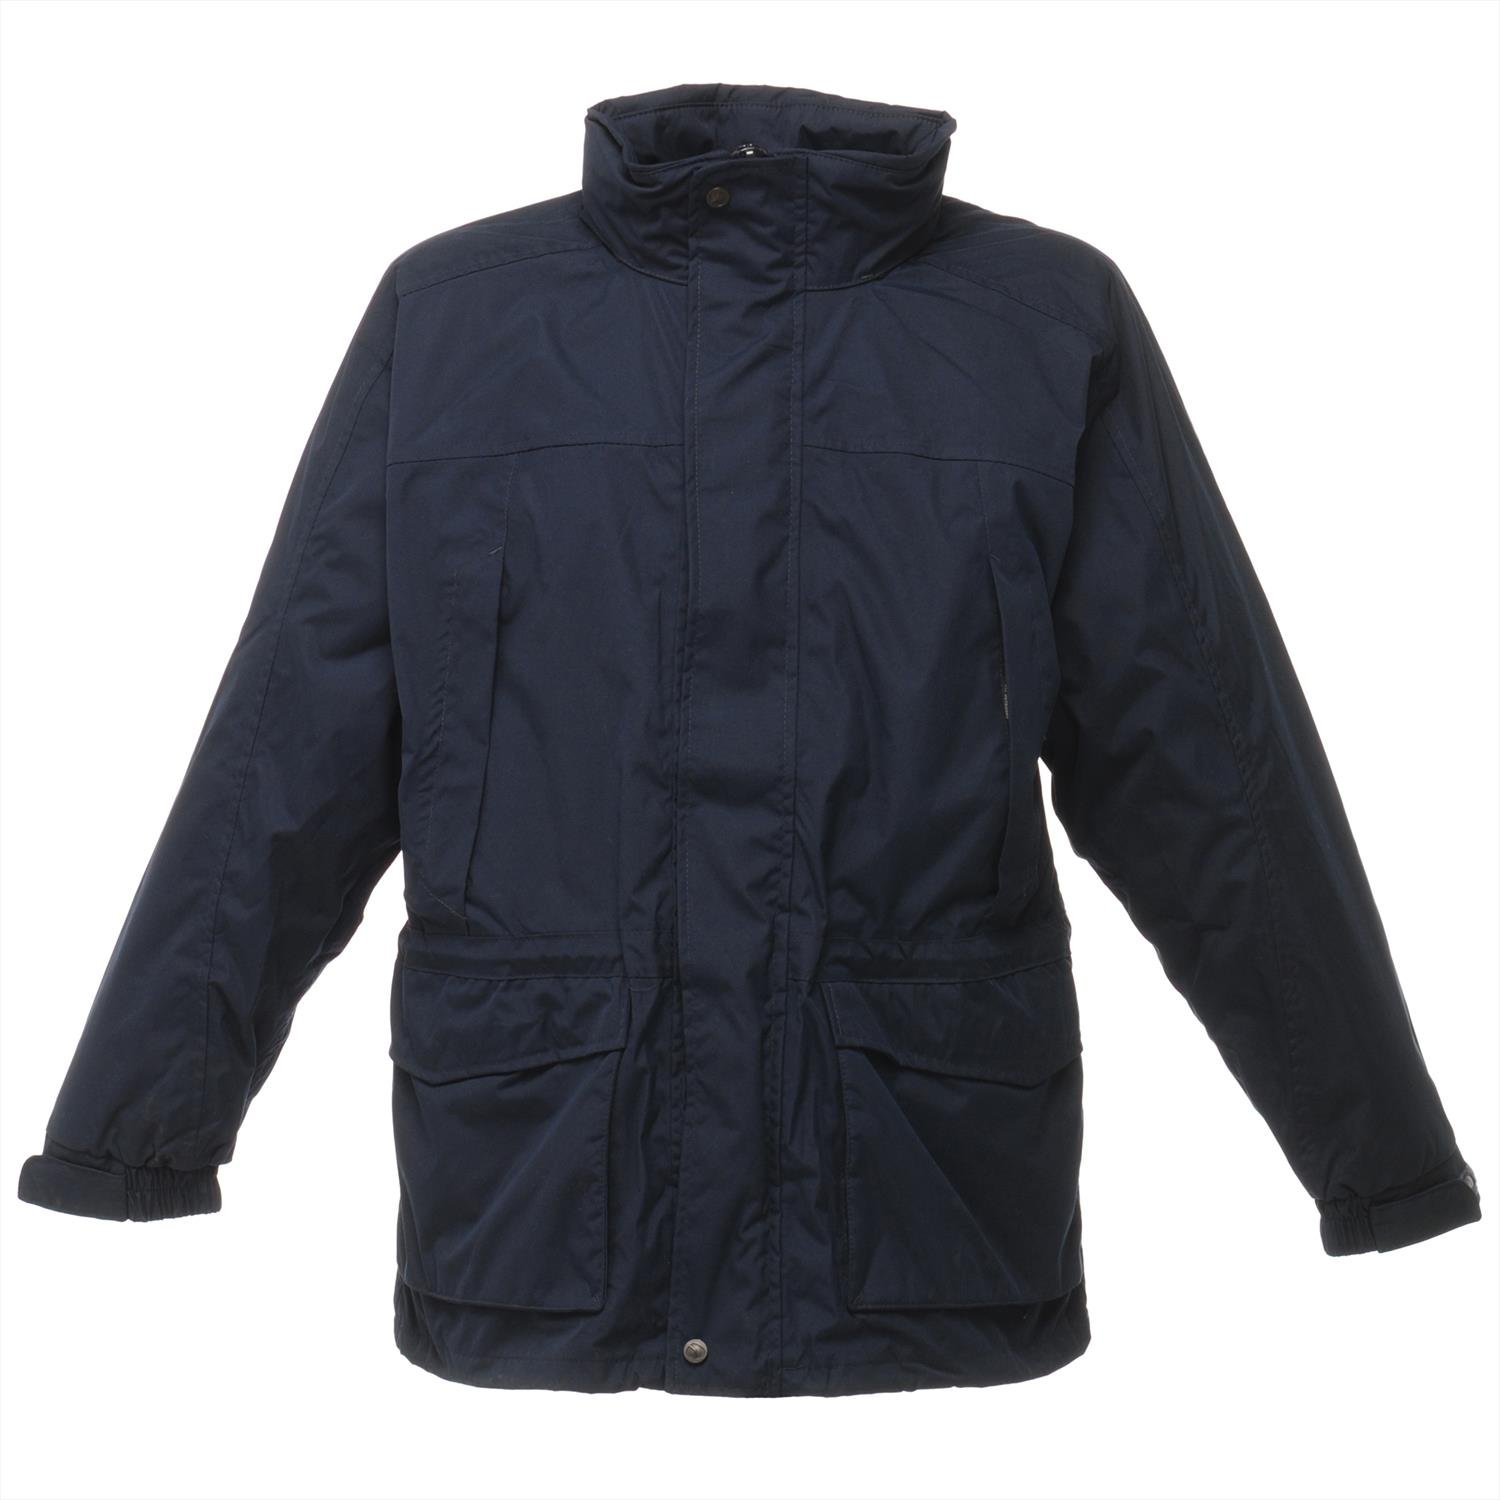 Regatta Men's Vertex II Waterproof Jacket